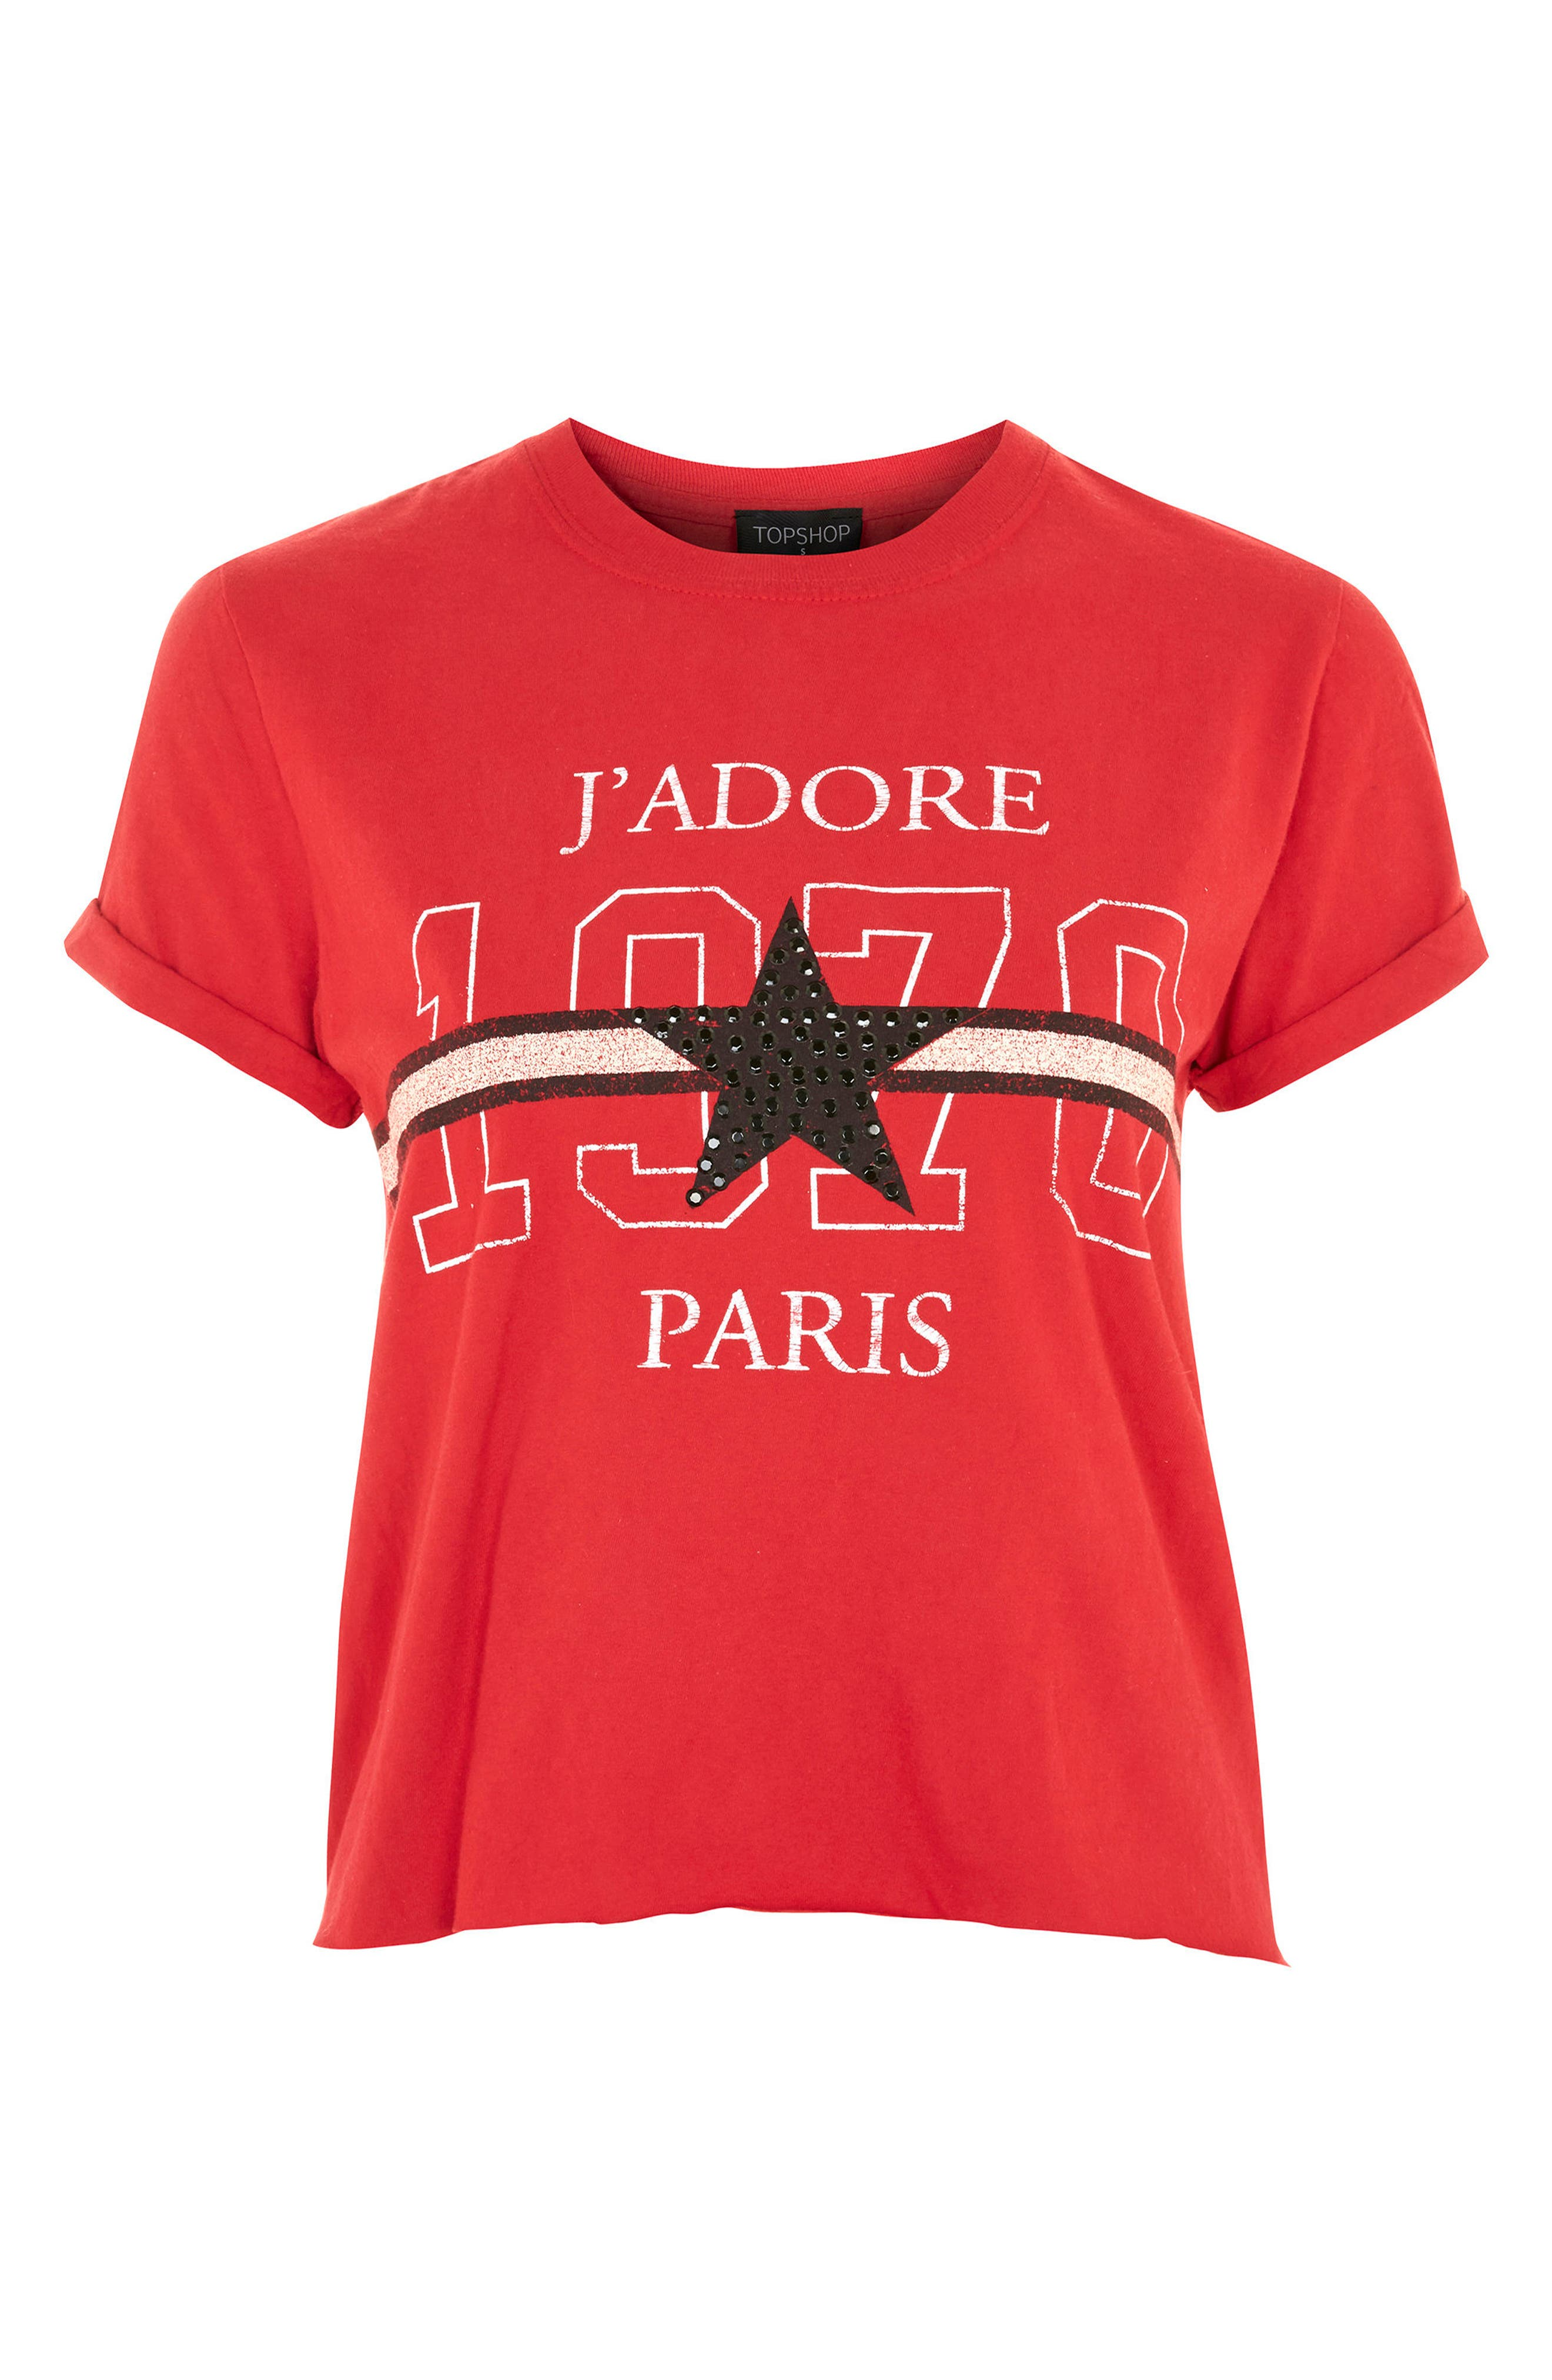 J'Adore Studded Crop T-Shirt,                             Alternate thumbnail 4, color,                             Red Multi